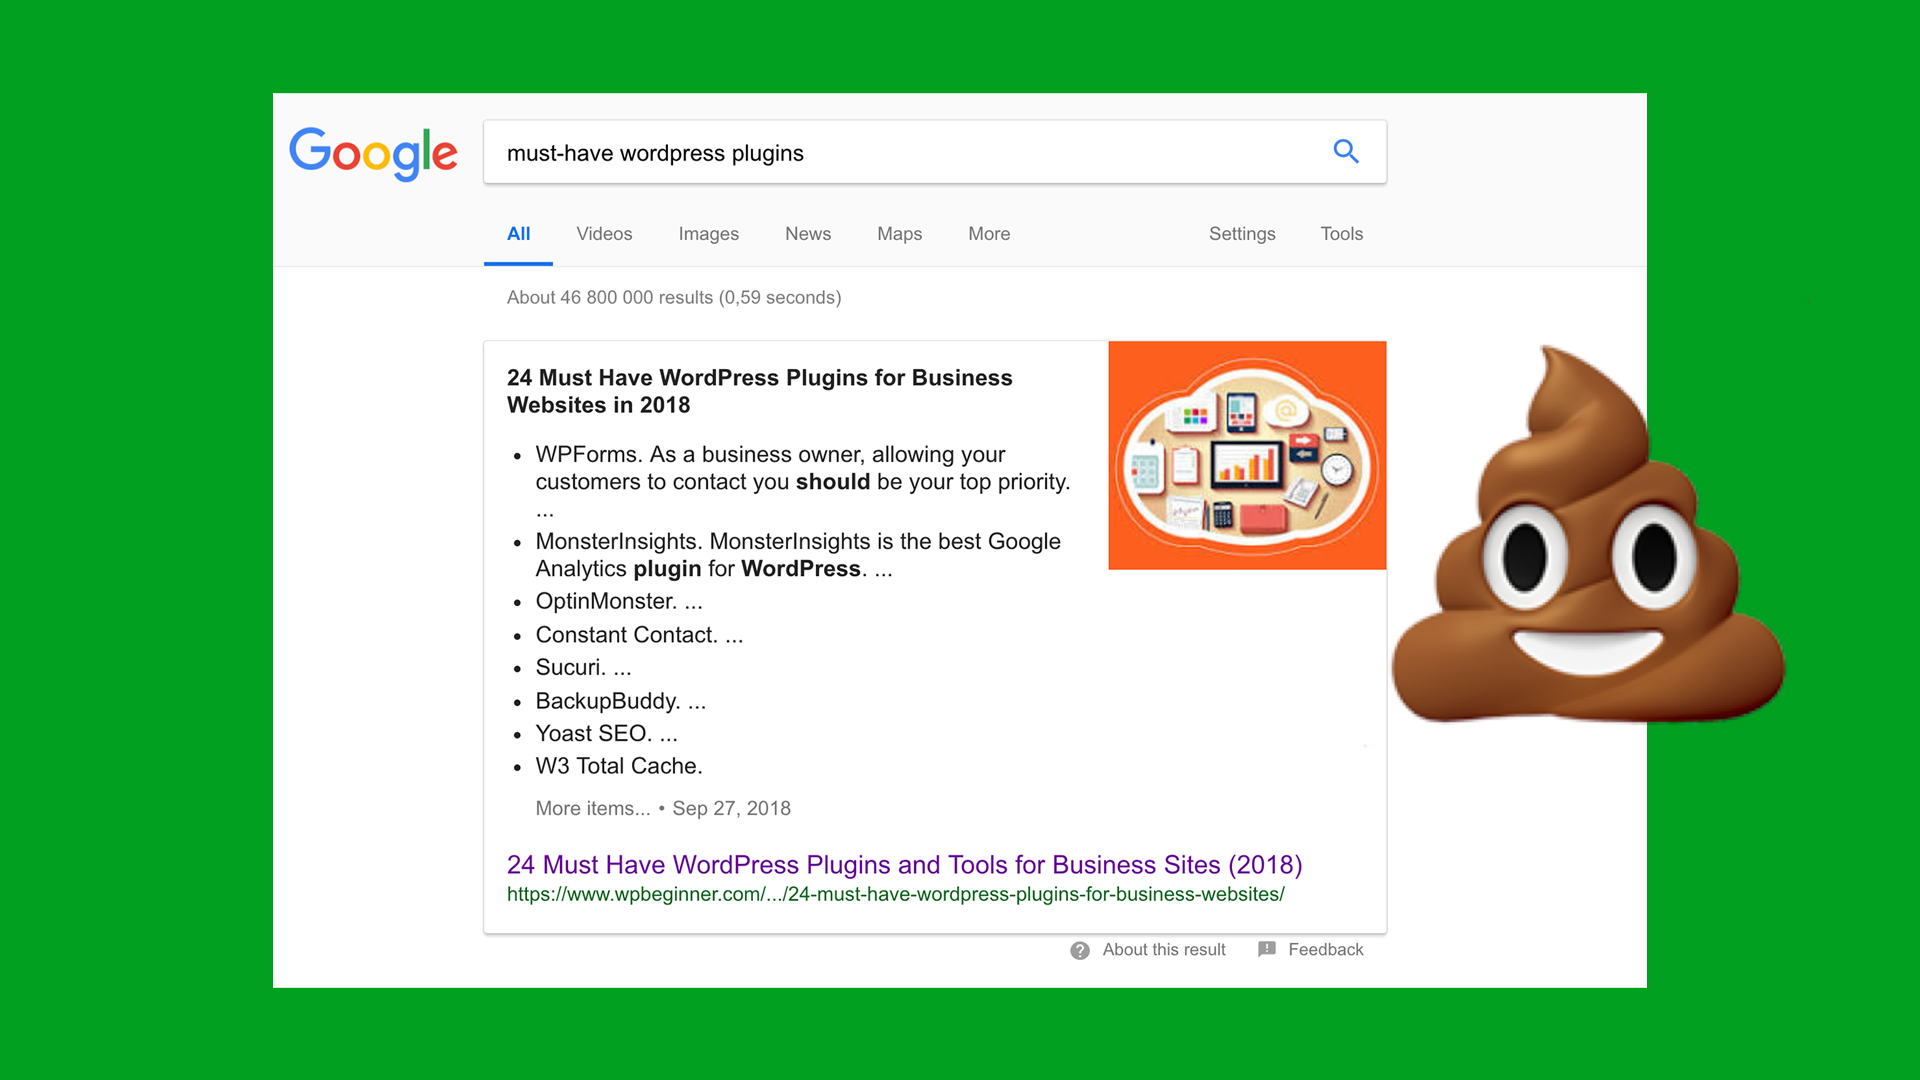 """The top result when searching for """"must-have wordpress plugins"""" lists over 20 plugins as """"must-have""""—that's ridiculous!"""